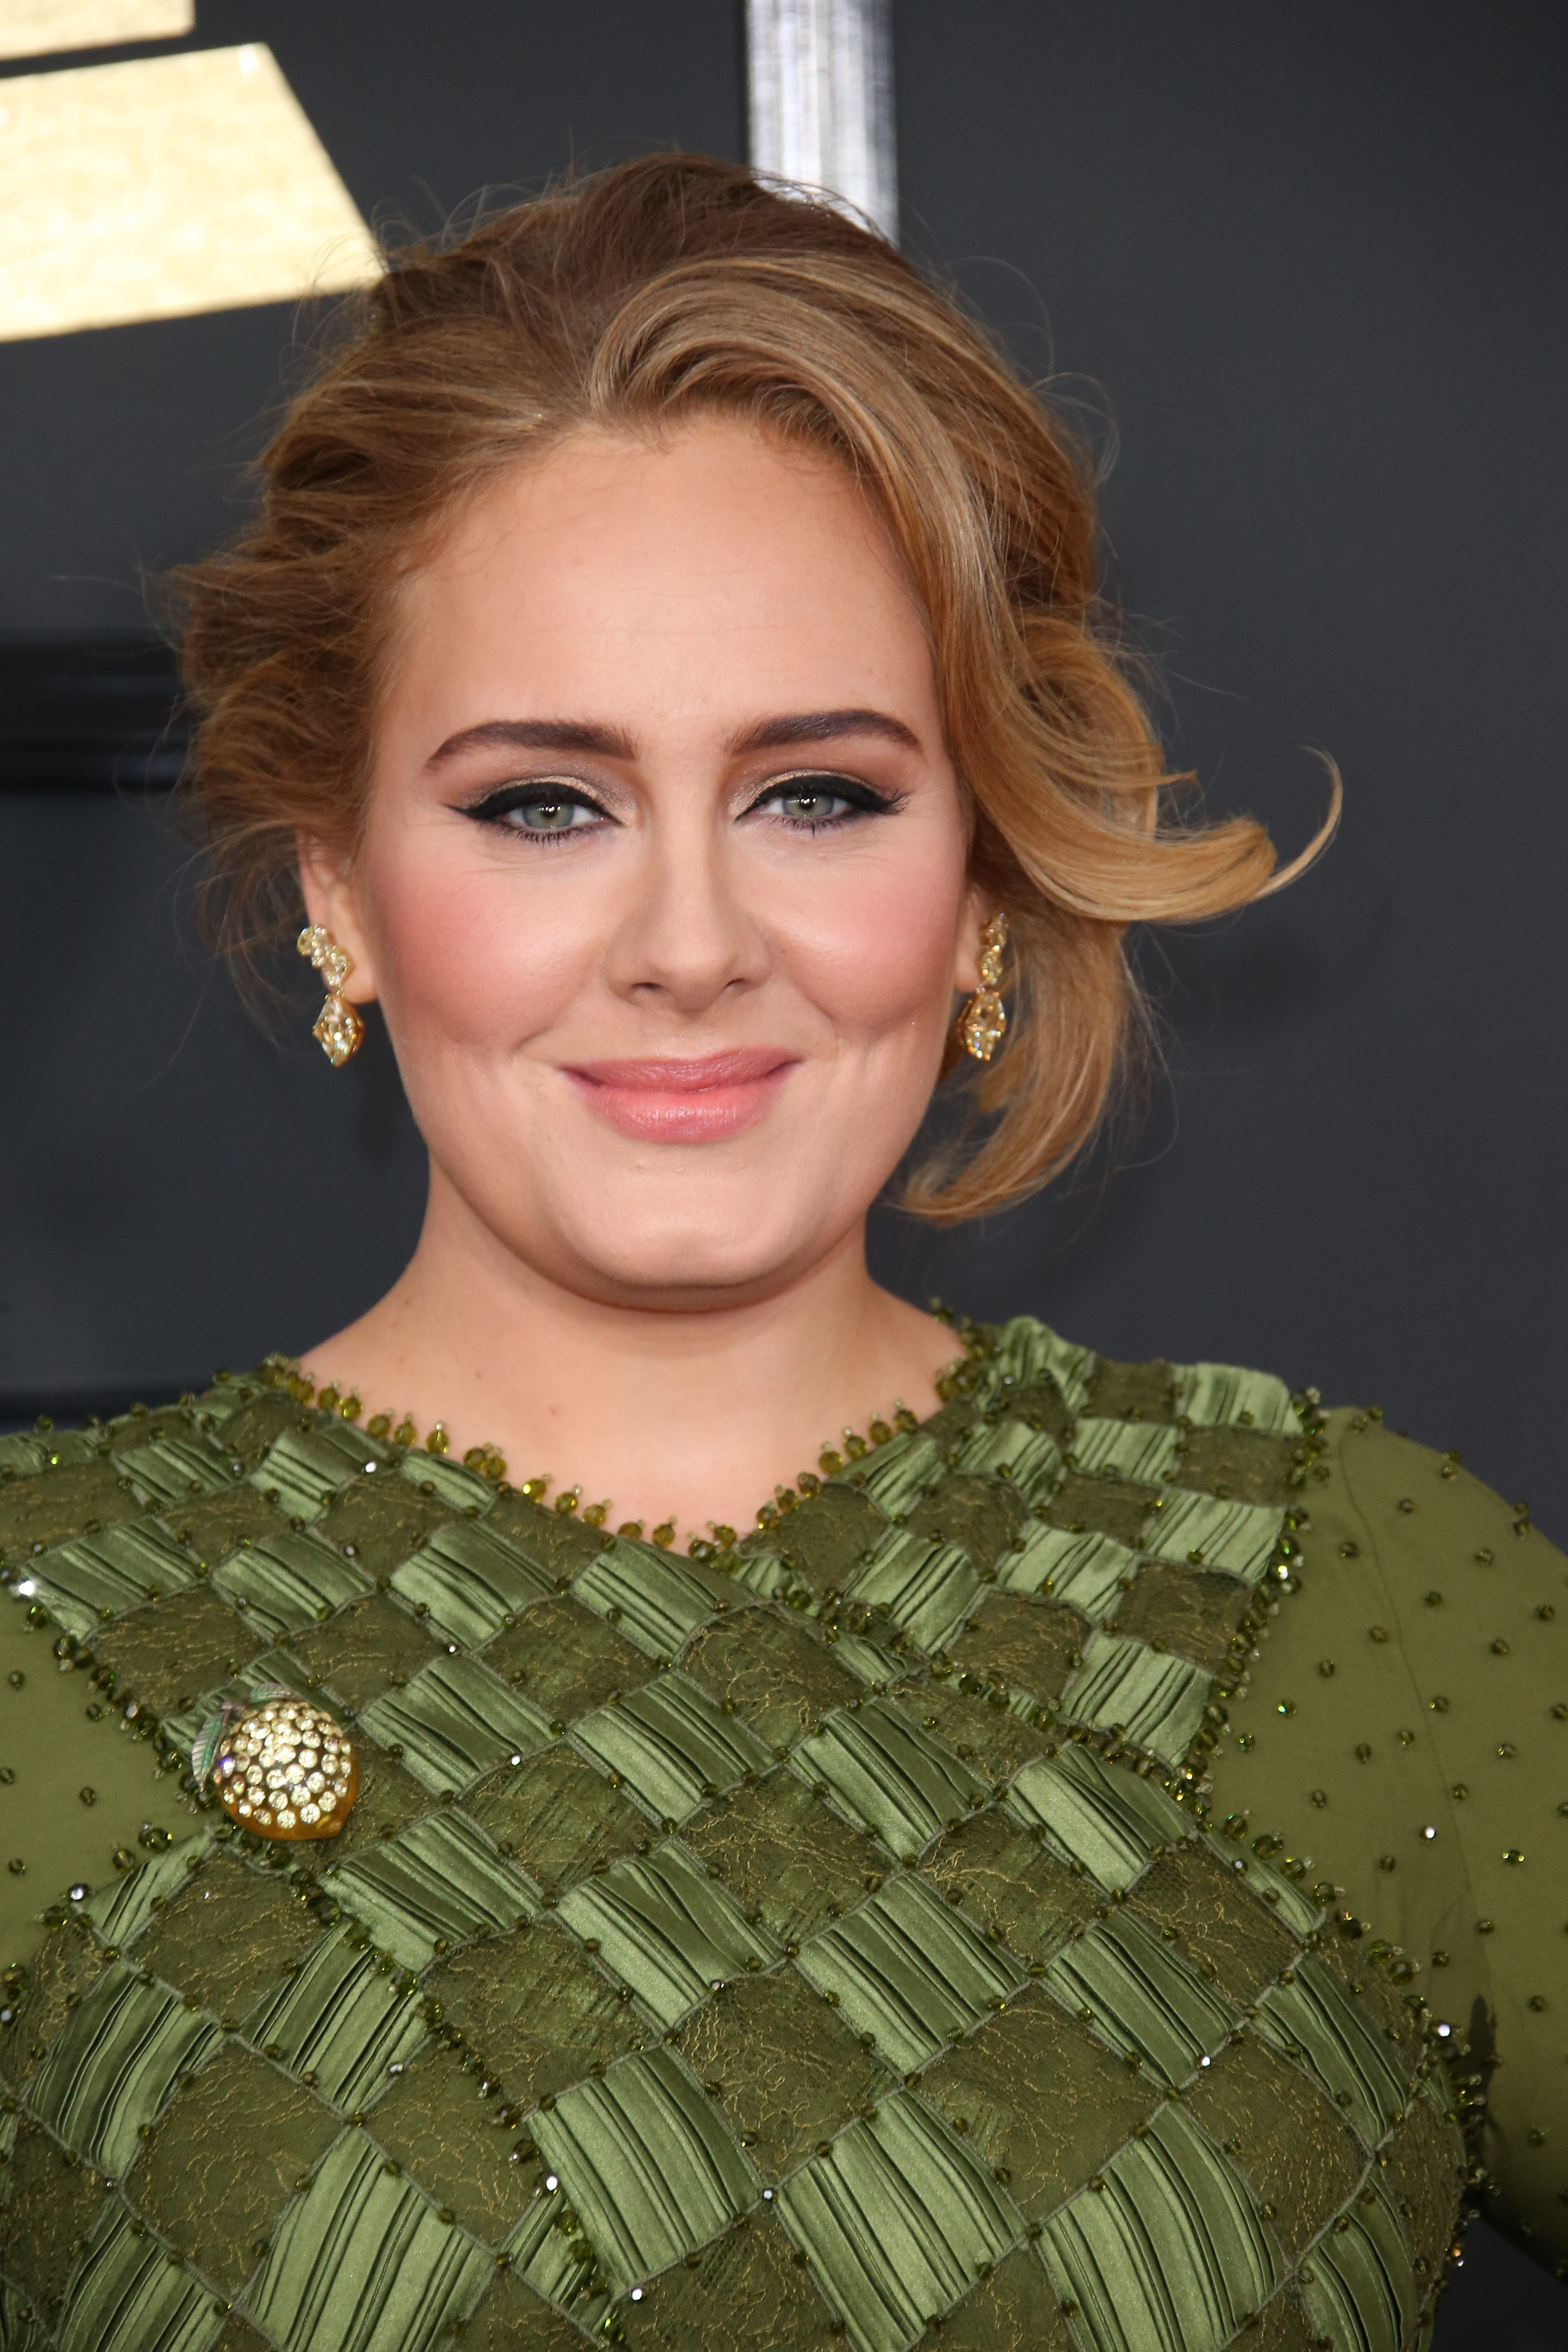 http://www usatoday com/picture-gallery/life/style/2014/09/12